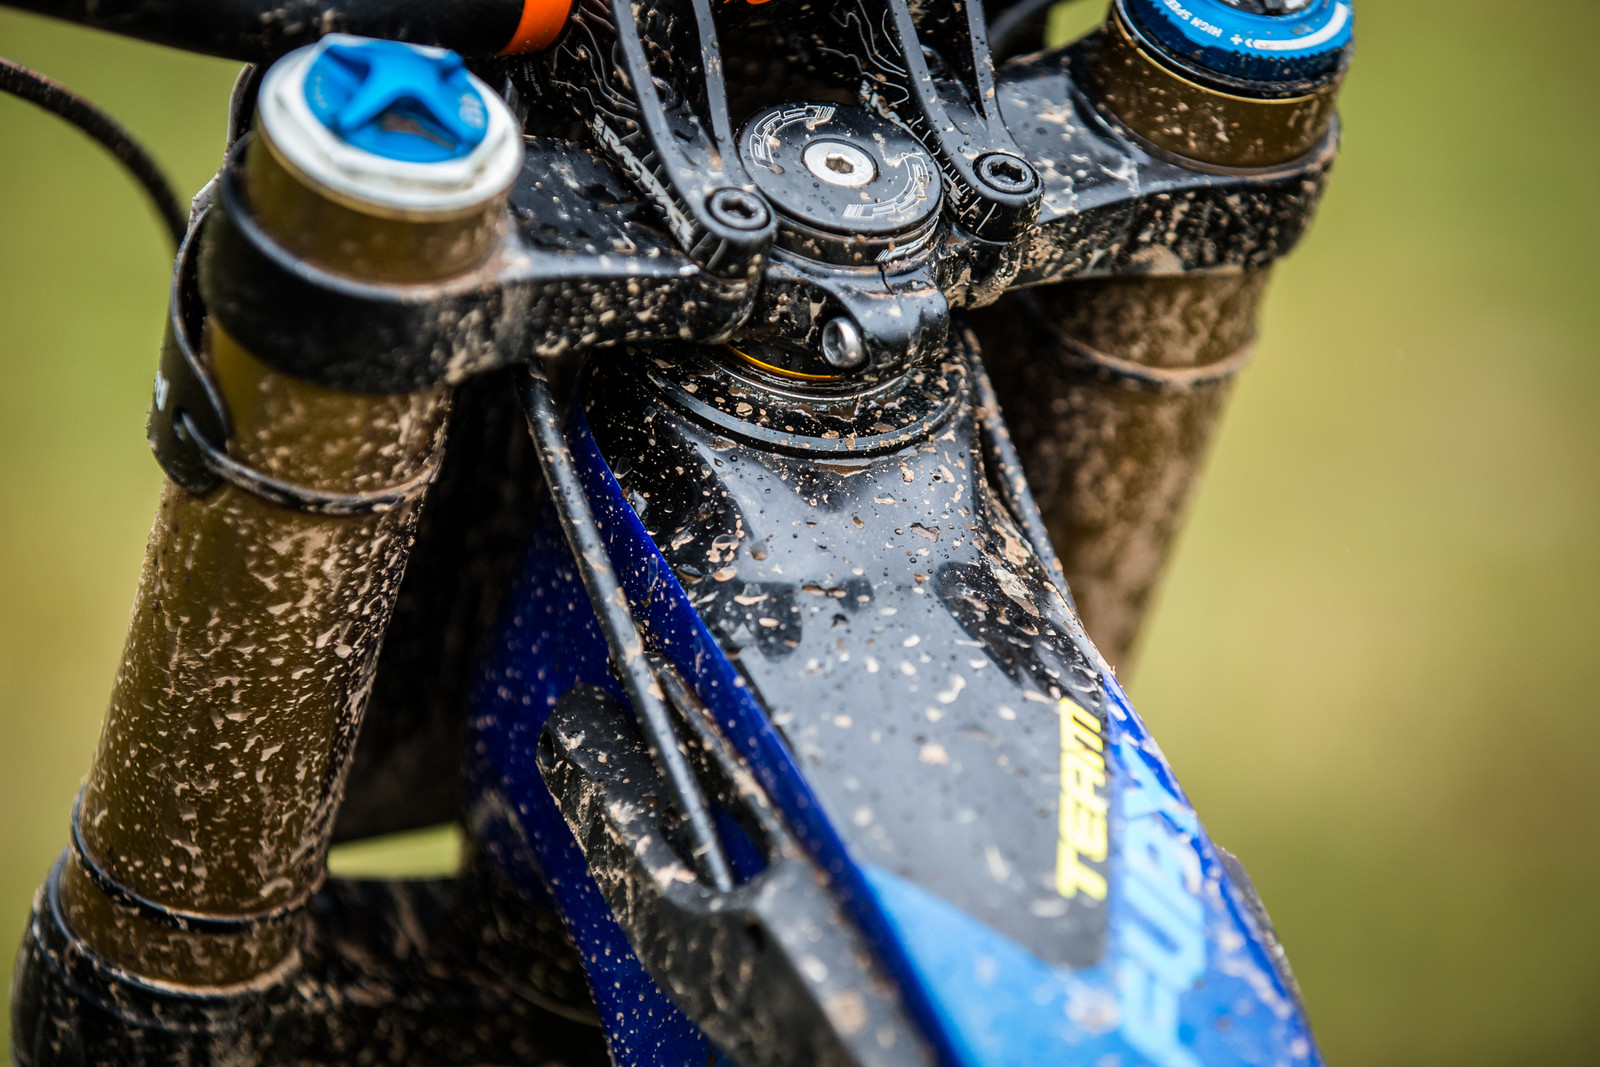 Adjustable Headset / Headtube Cup - WINNING BIKE - Martin Maes' GT Fury - Mountain Biking Pictures - Vital MTB